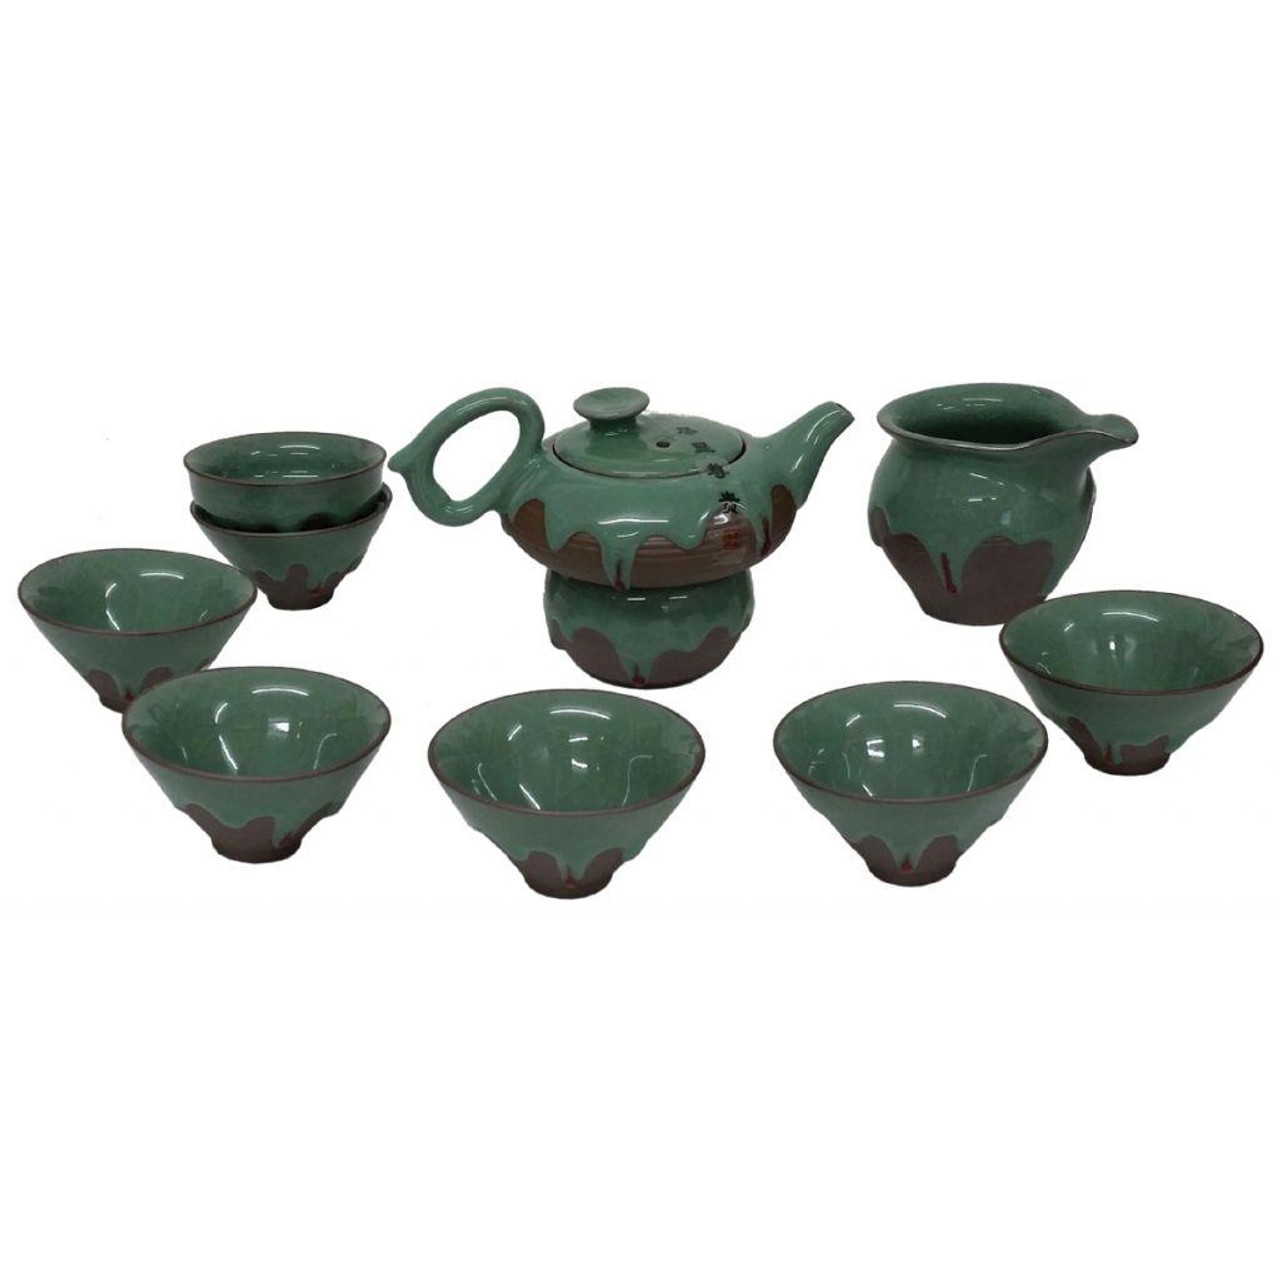 Chinese Green Iced Luxury Tea Set with Jug and Strainer - Gift Boxed